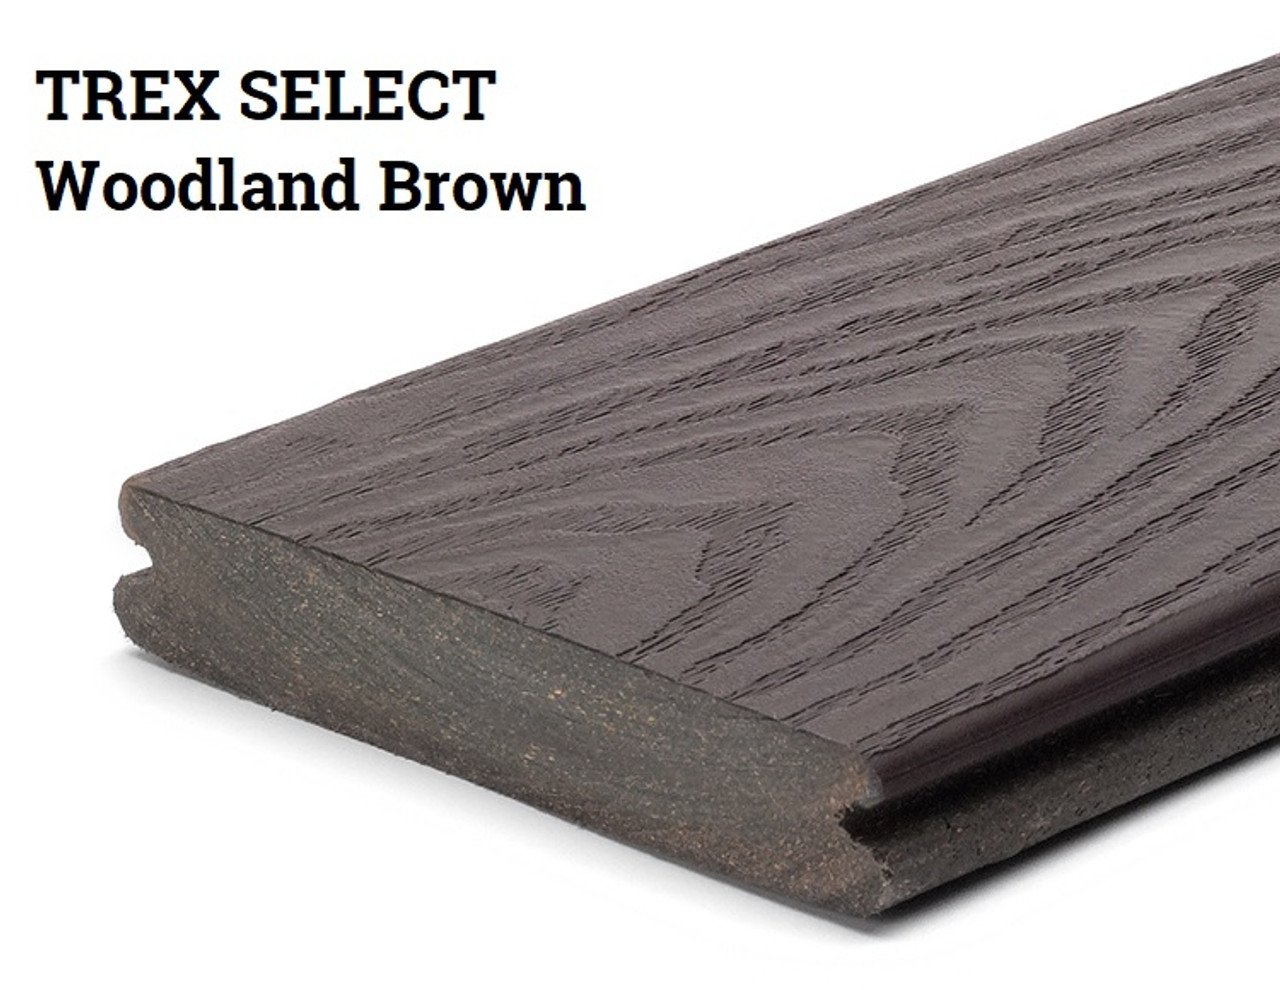 Trex Select Woodland Brown Grooved Edge Decking